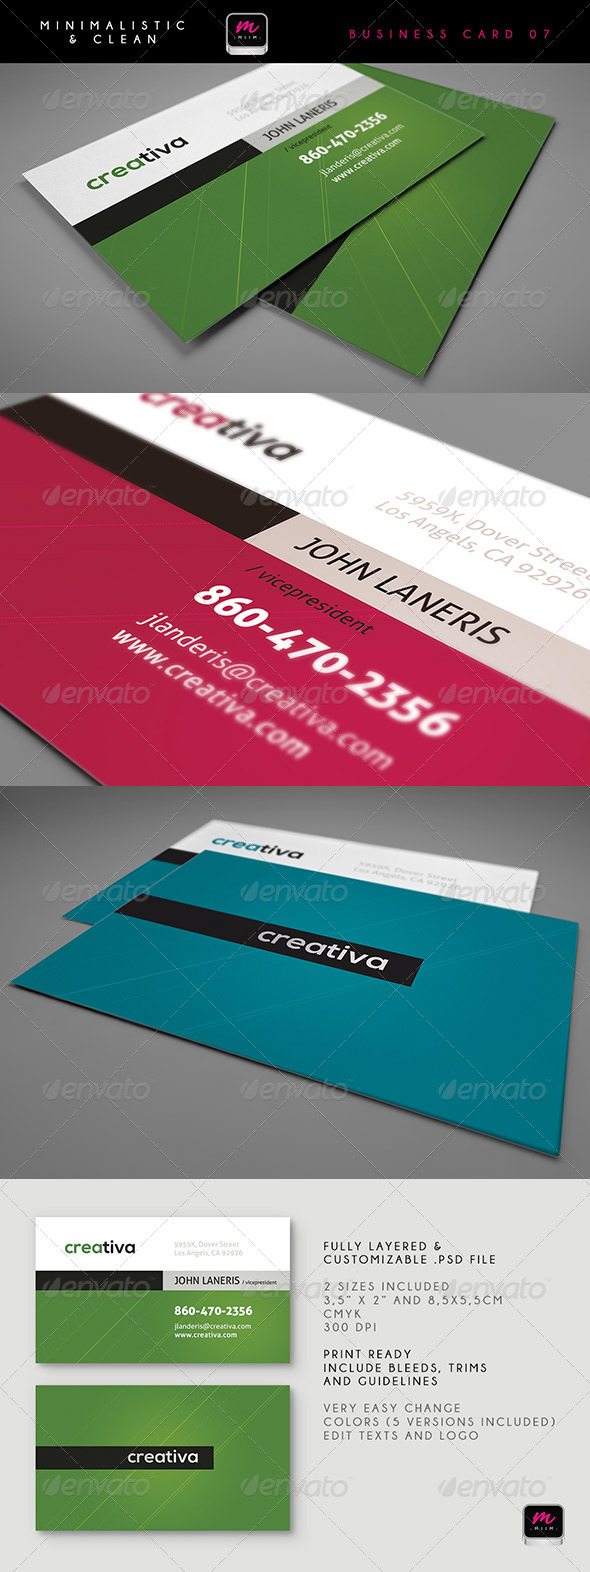 GraphicRiver Clean Business Card Template 07 5913412